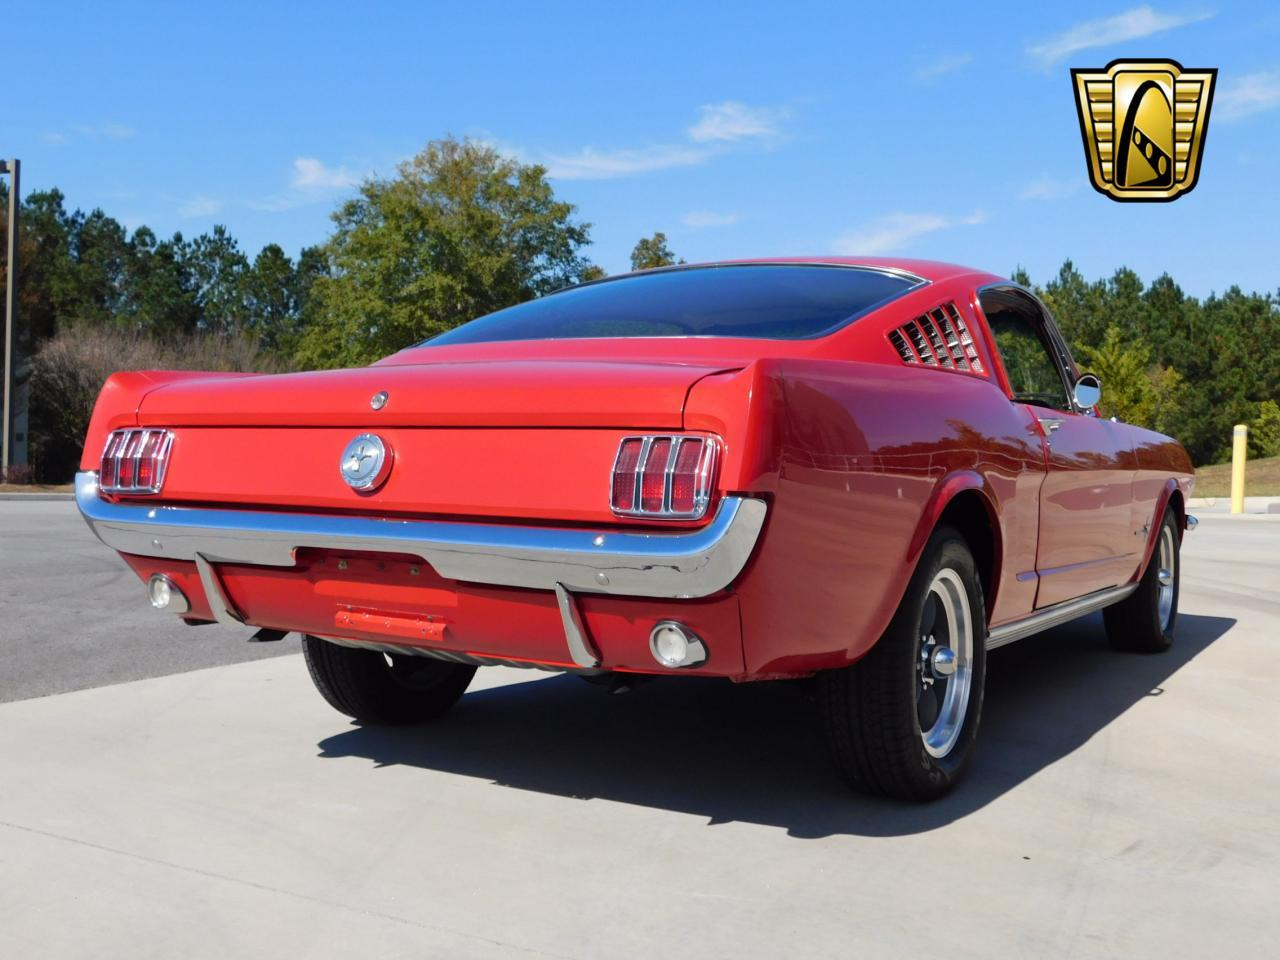 Large Picture of '66 Ford Mustang located in Alpharetta Georgia - $46,995.00 Offered by Gateway Classic Cars - Atlanta - M8OT